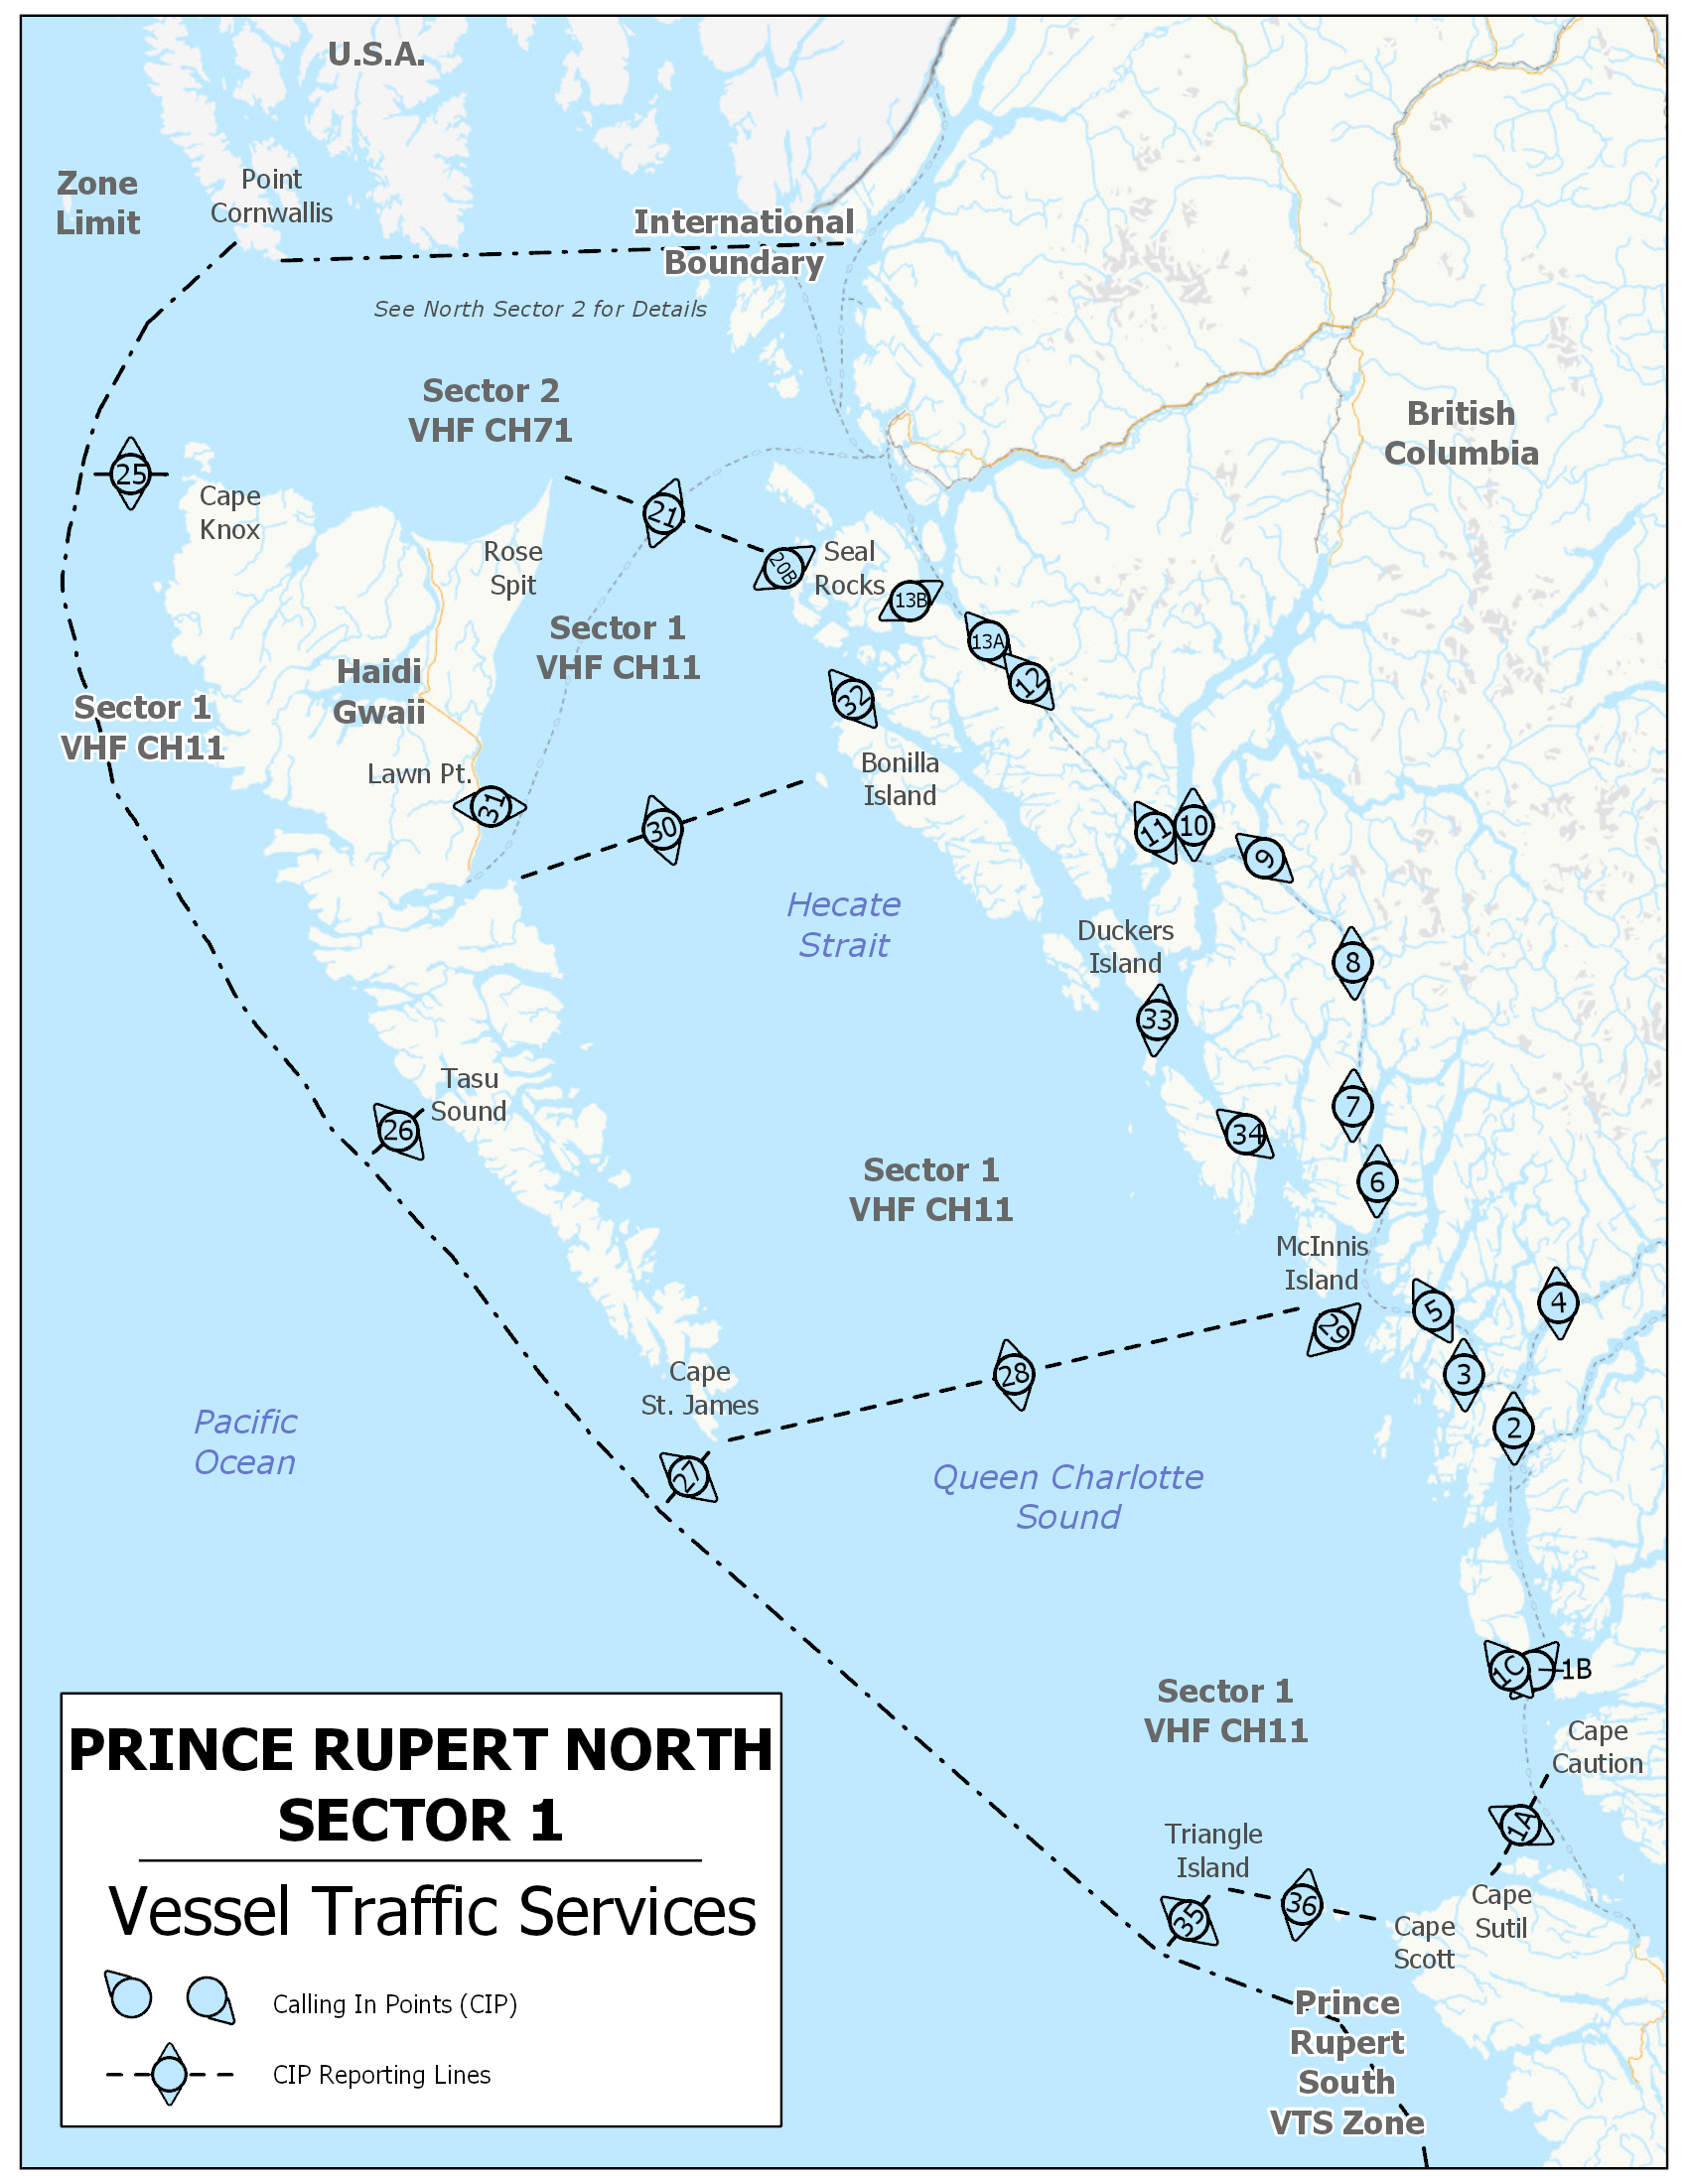 Prince Rupert - Vessel Traffic Services - Sector 1